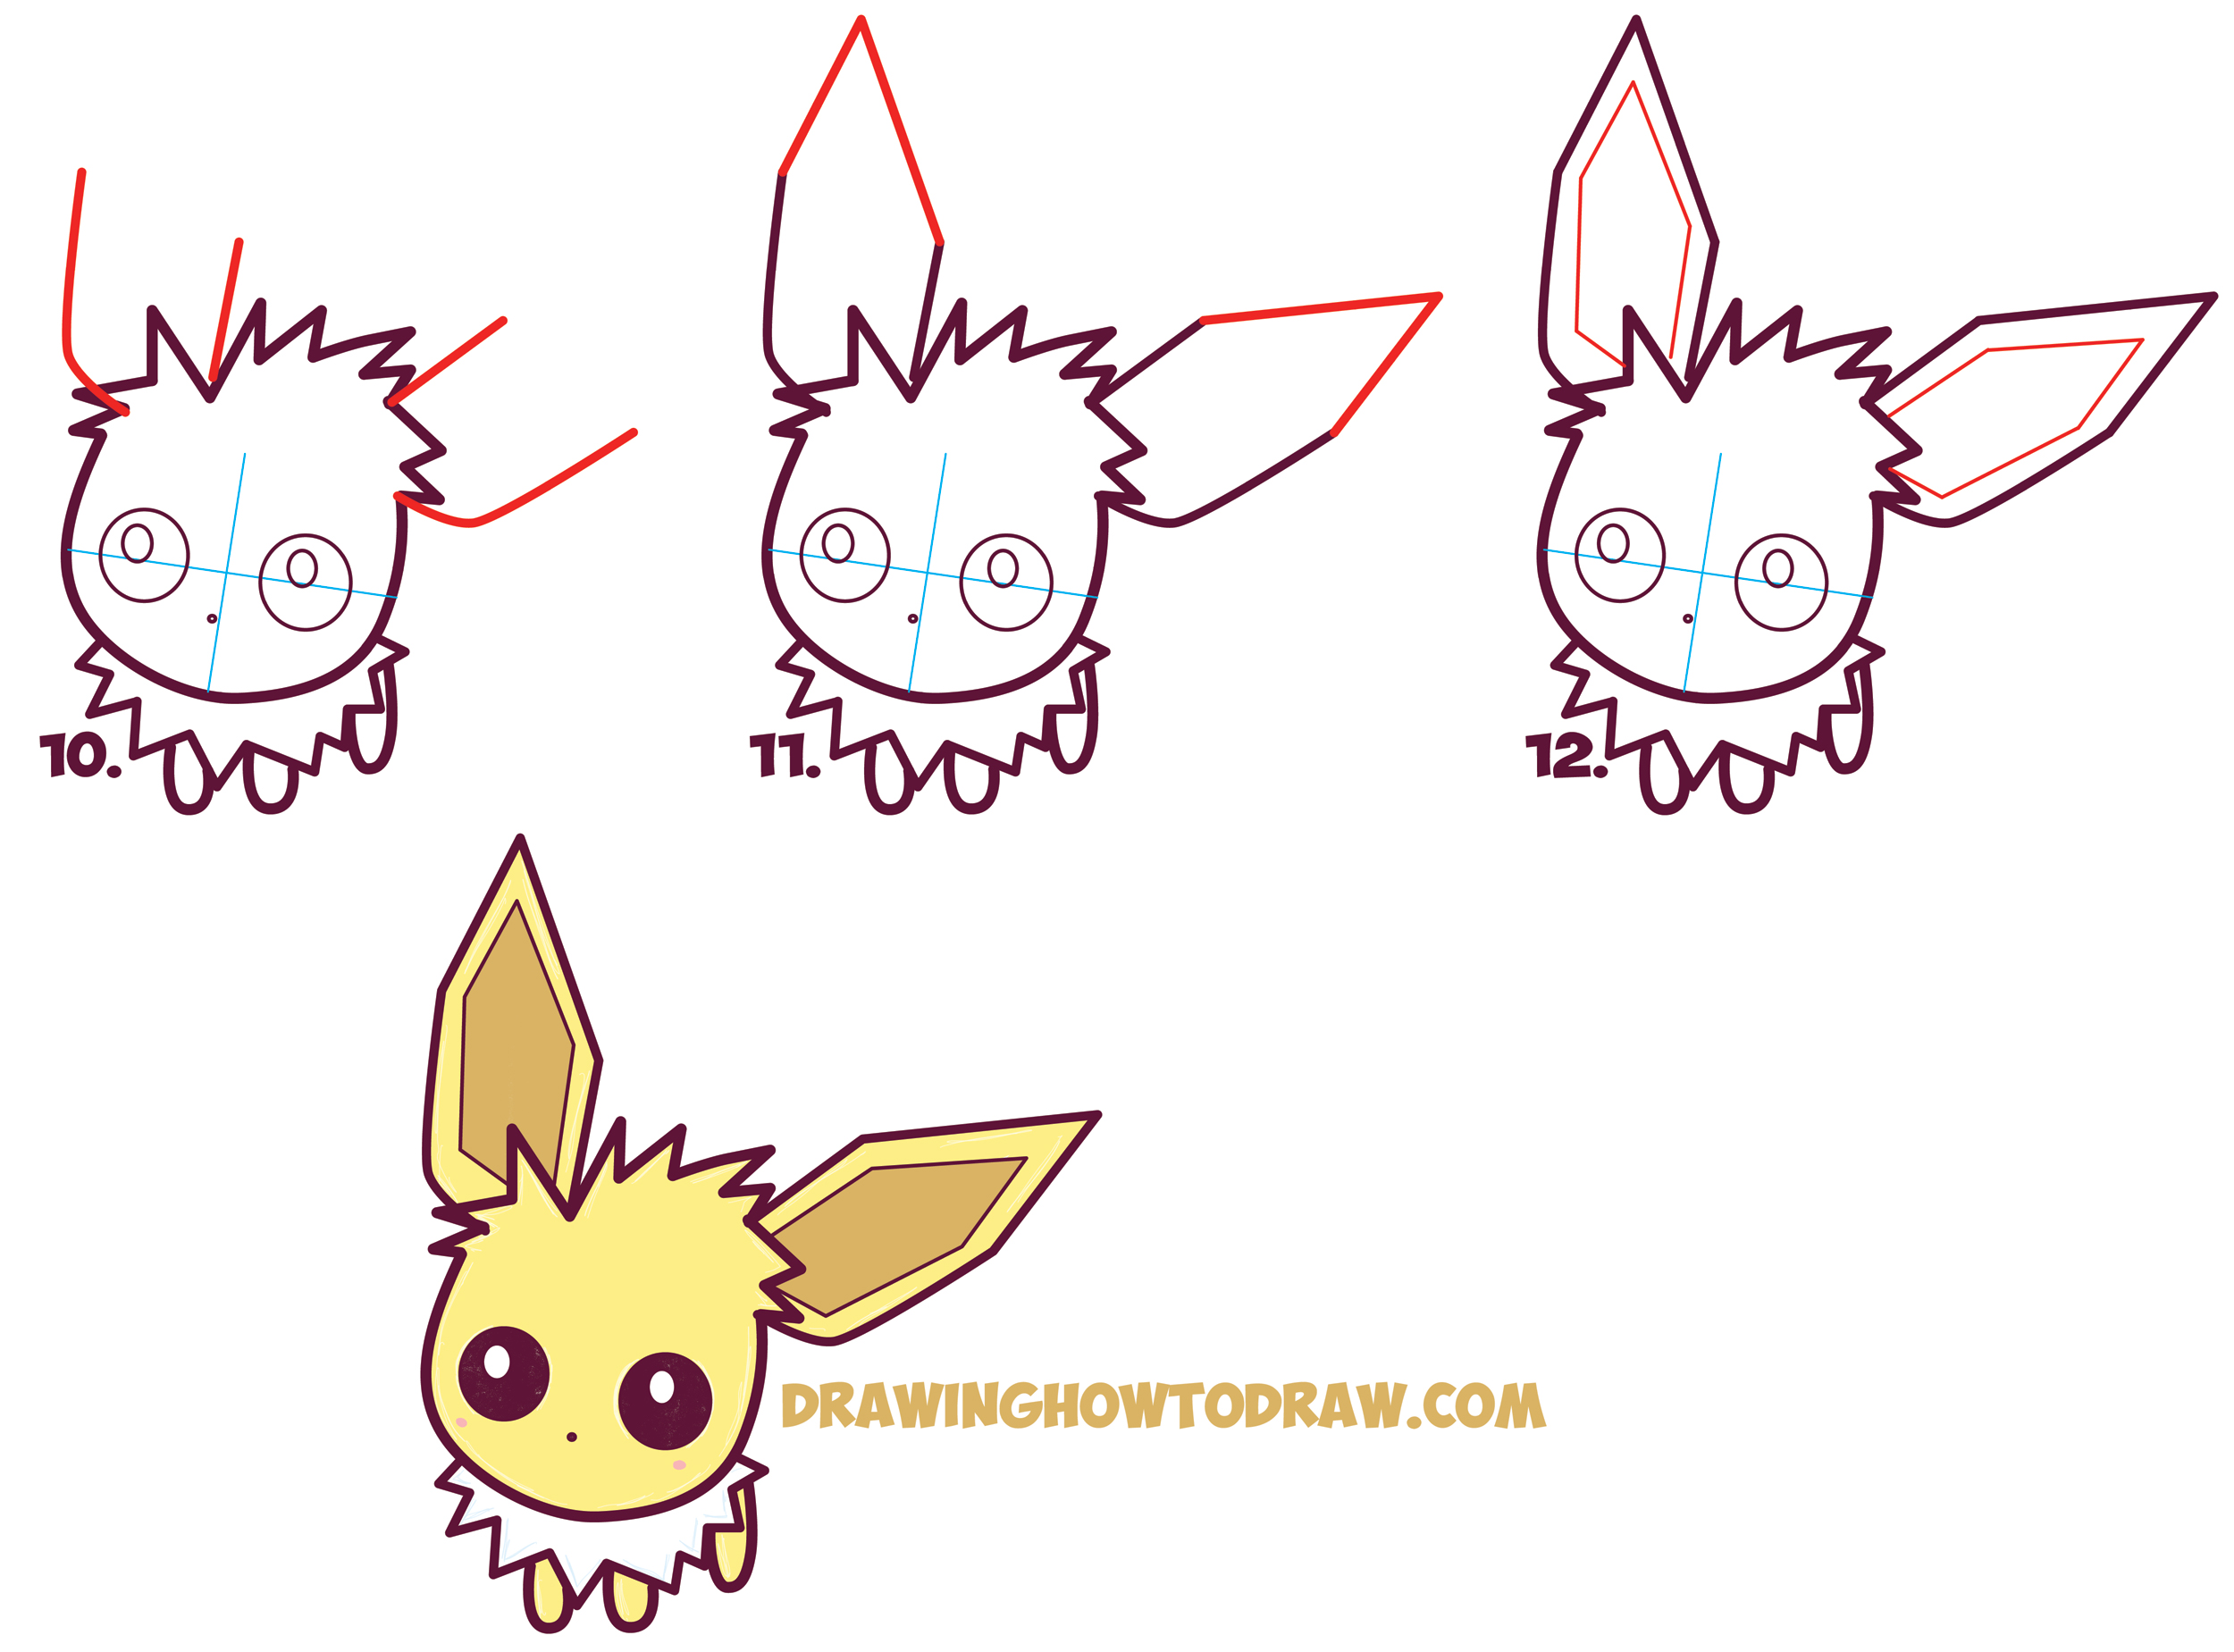 Learn How to Draw Cute / Kawaii / Chibi Jolteon from Pokemon Simple Steps Drawing Lesson for Beginners